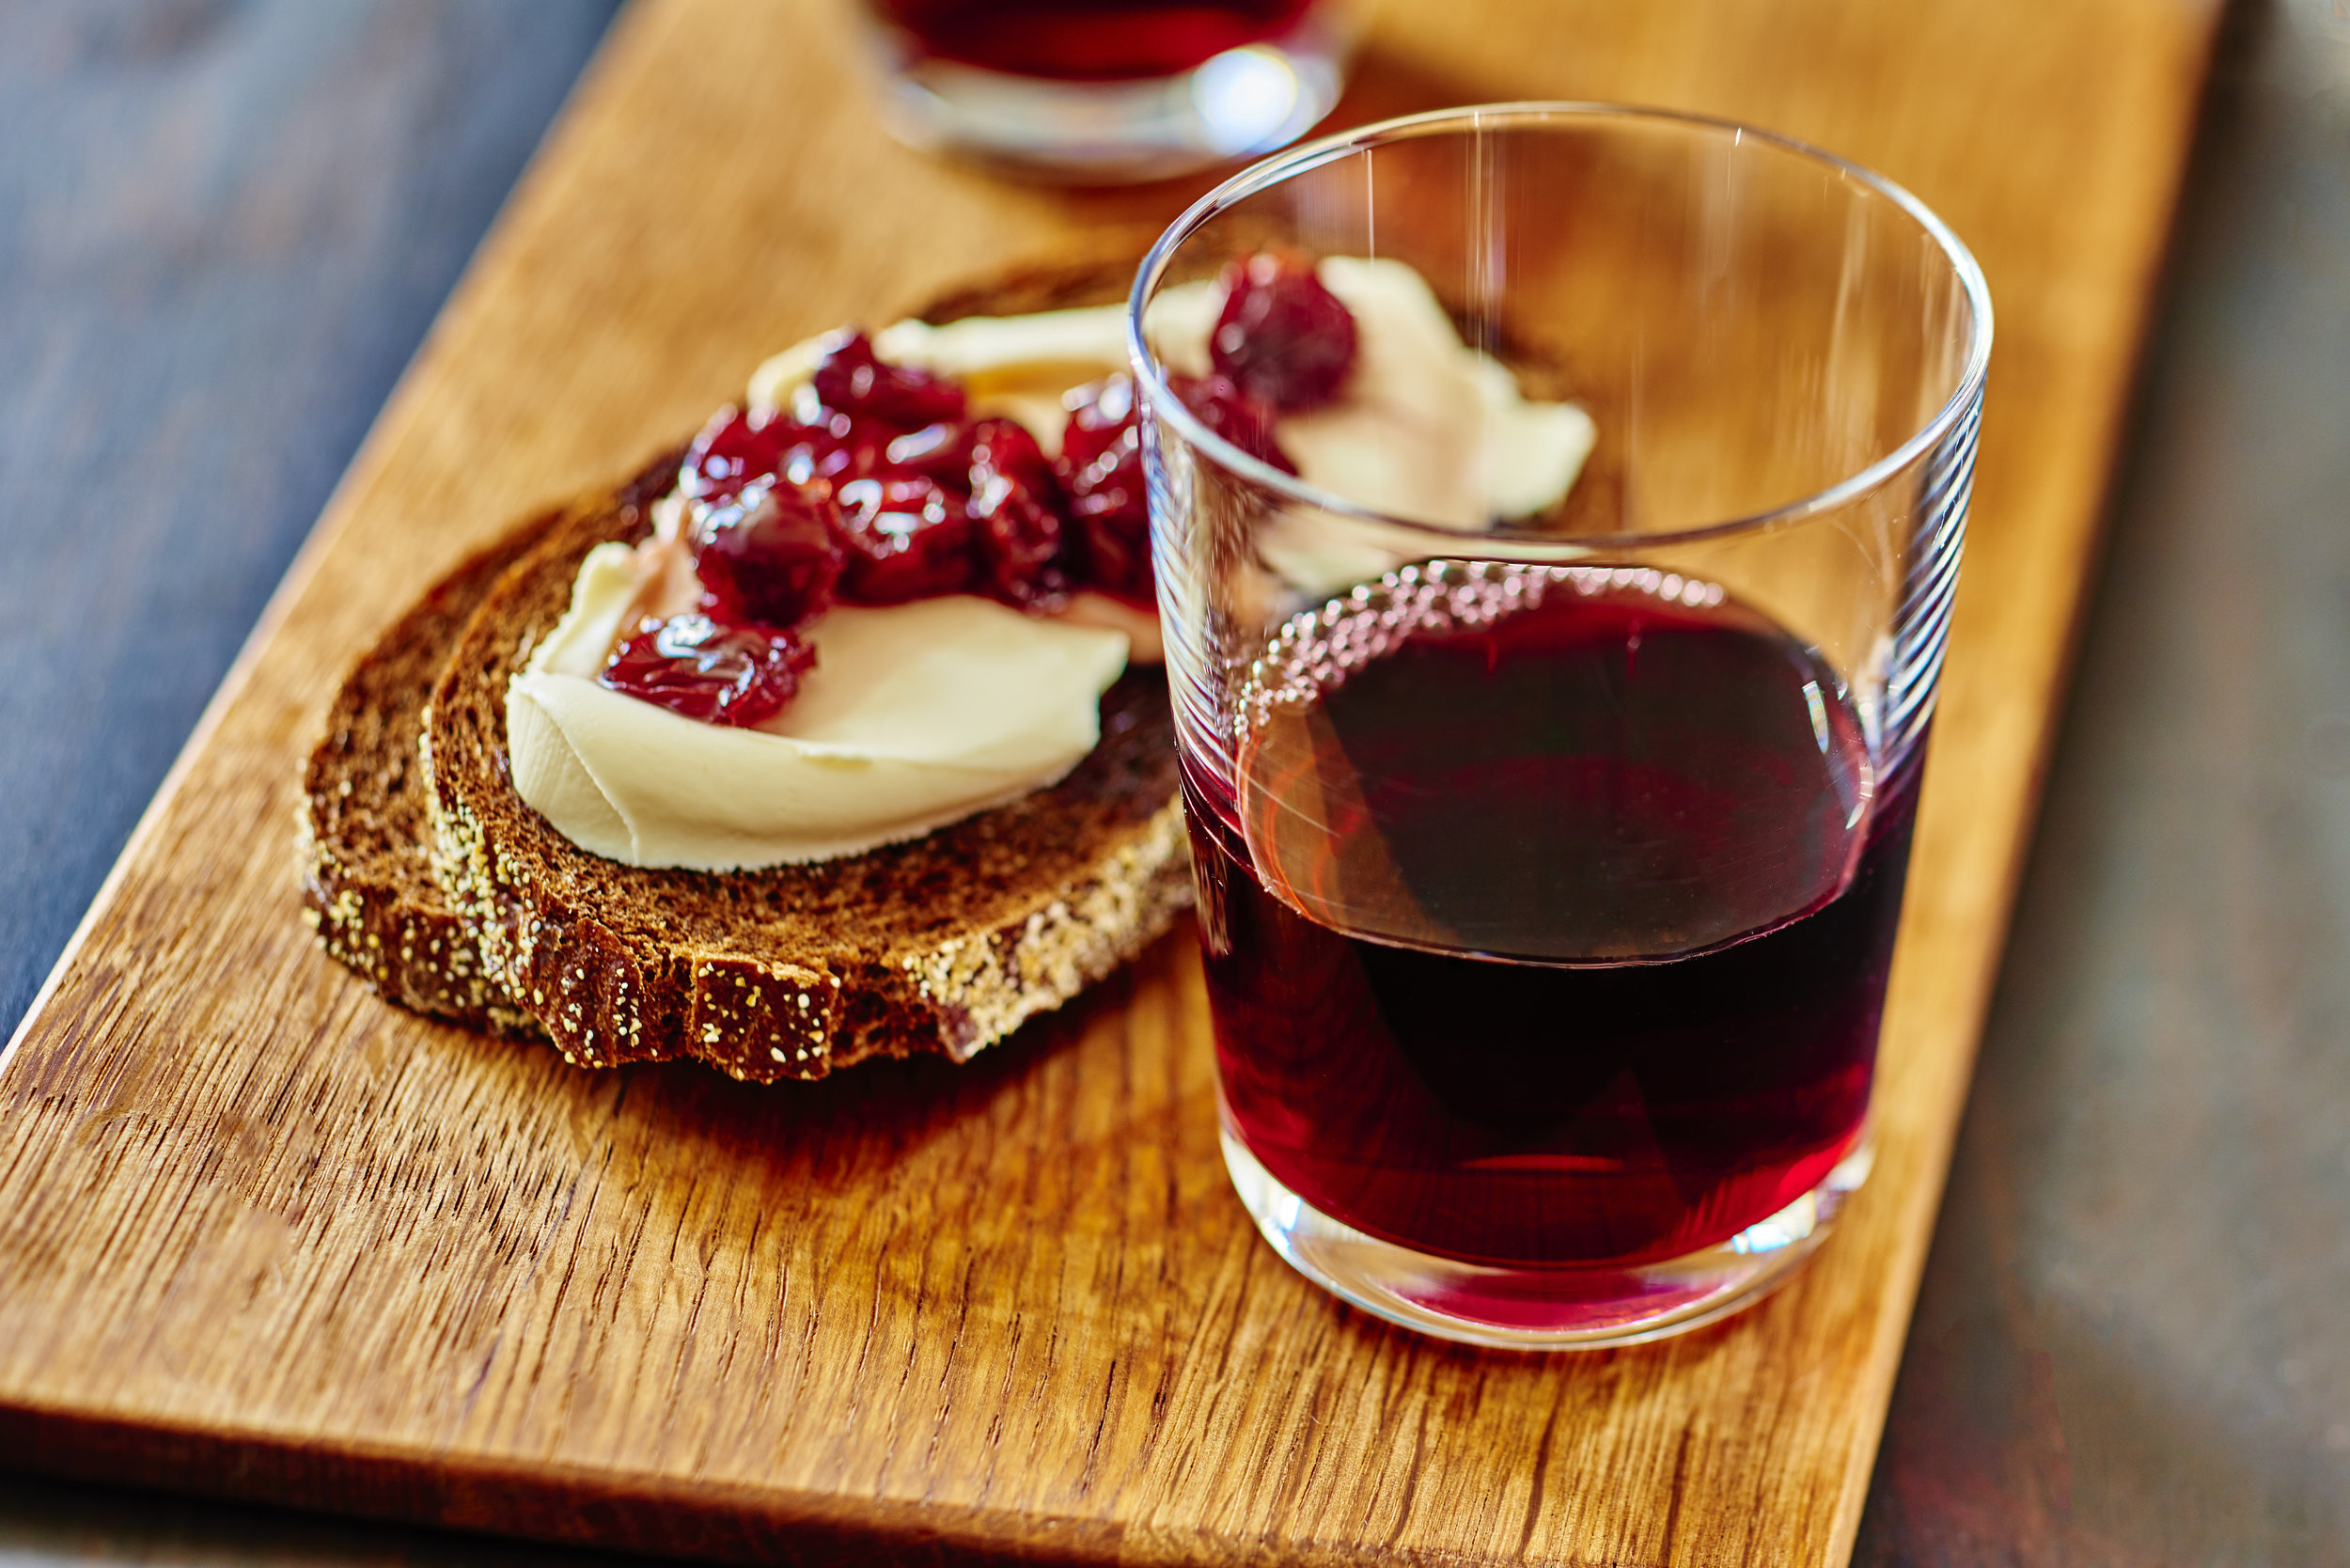 Spanish Cheese Bruschetta and Red Wine